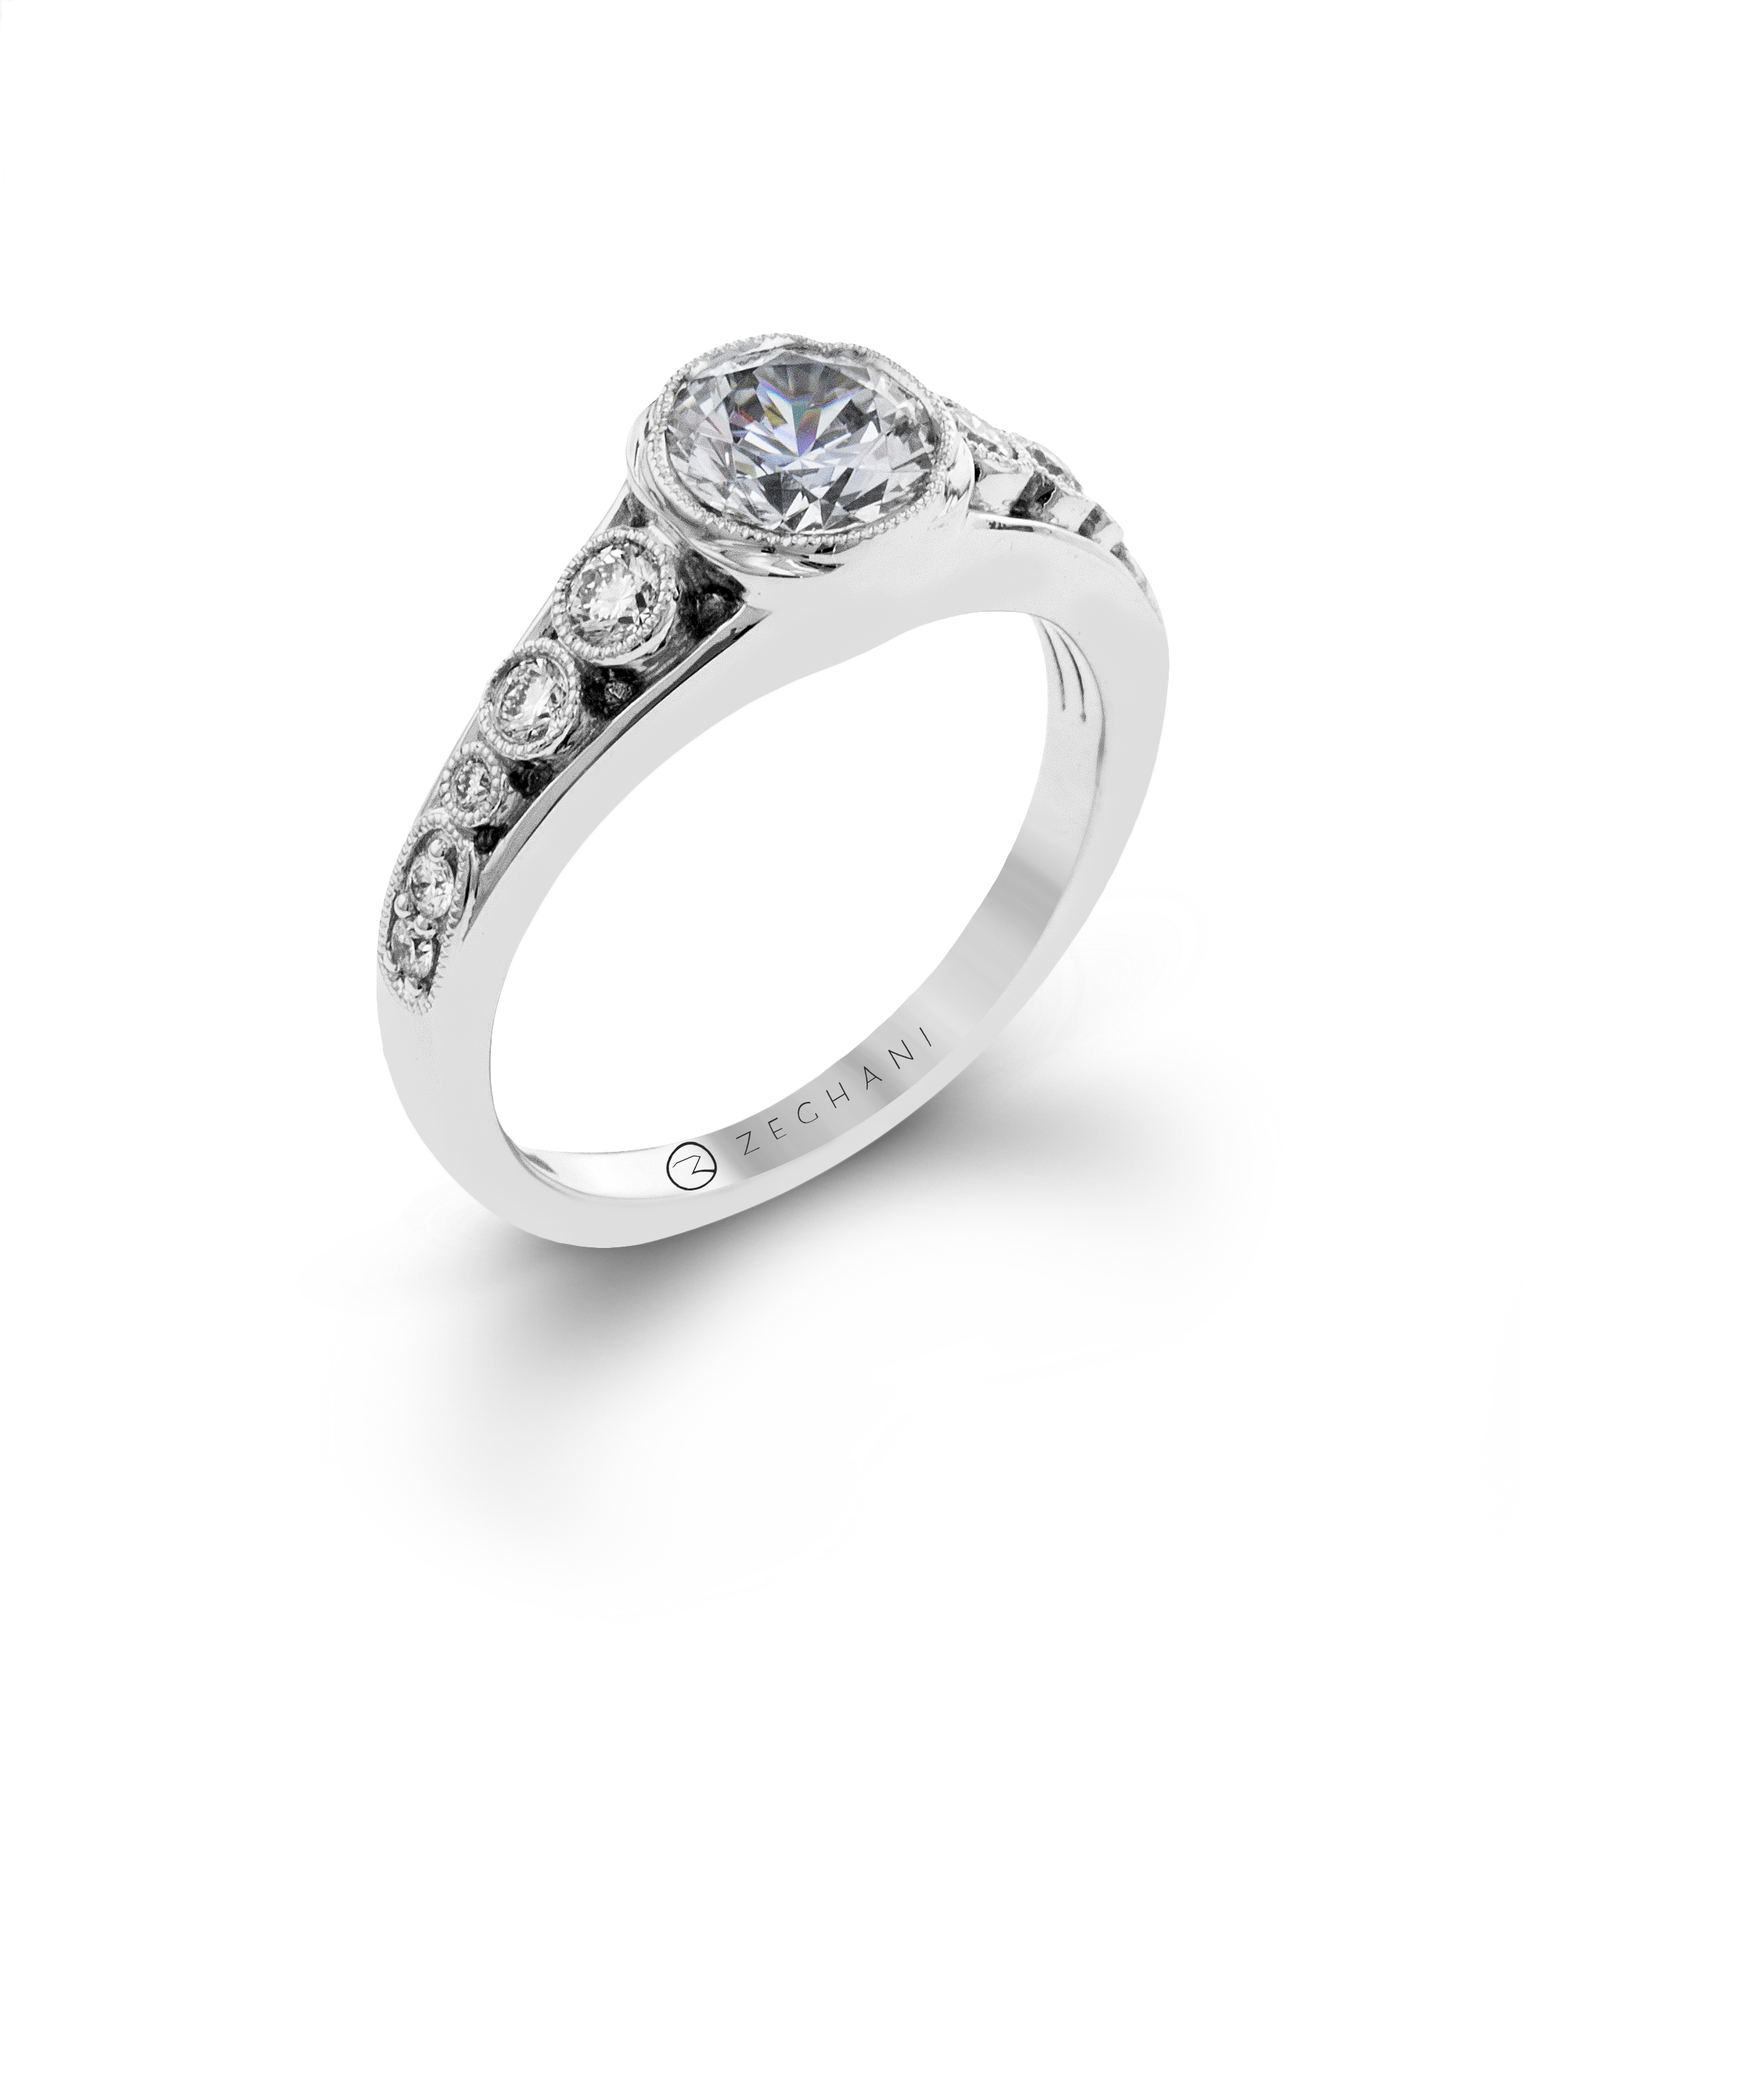 tw engagement diamond platinum ring jerezwine jewelry in settings ct jewellery setting